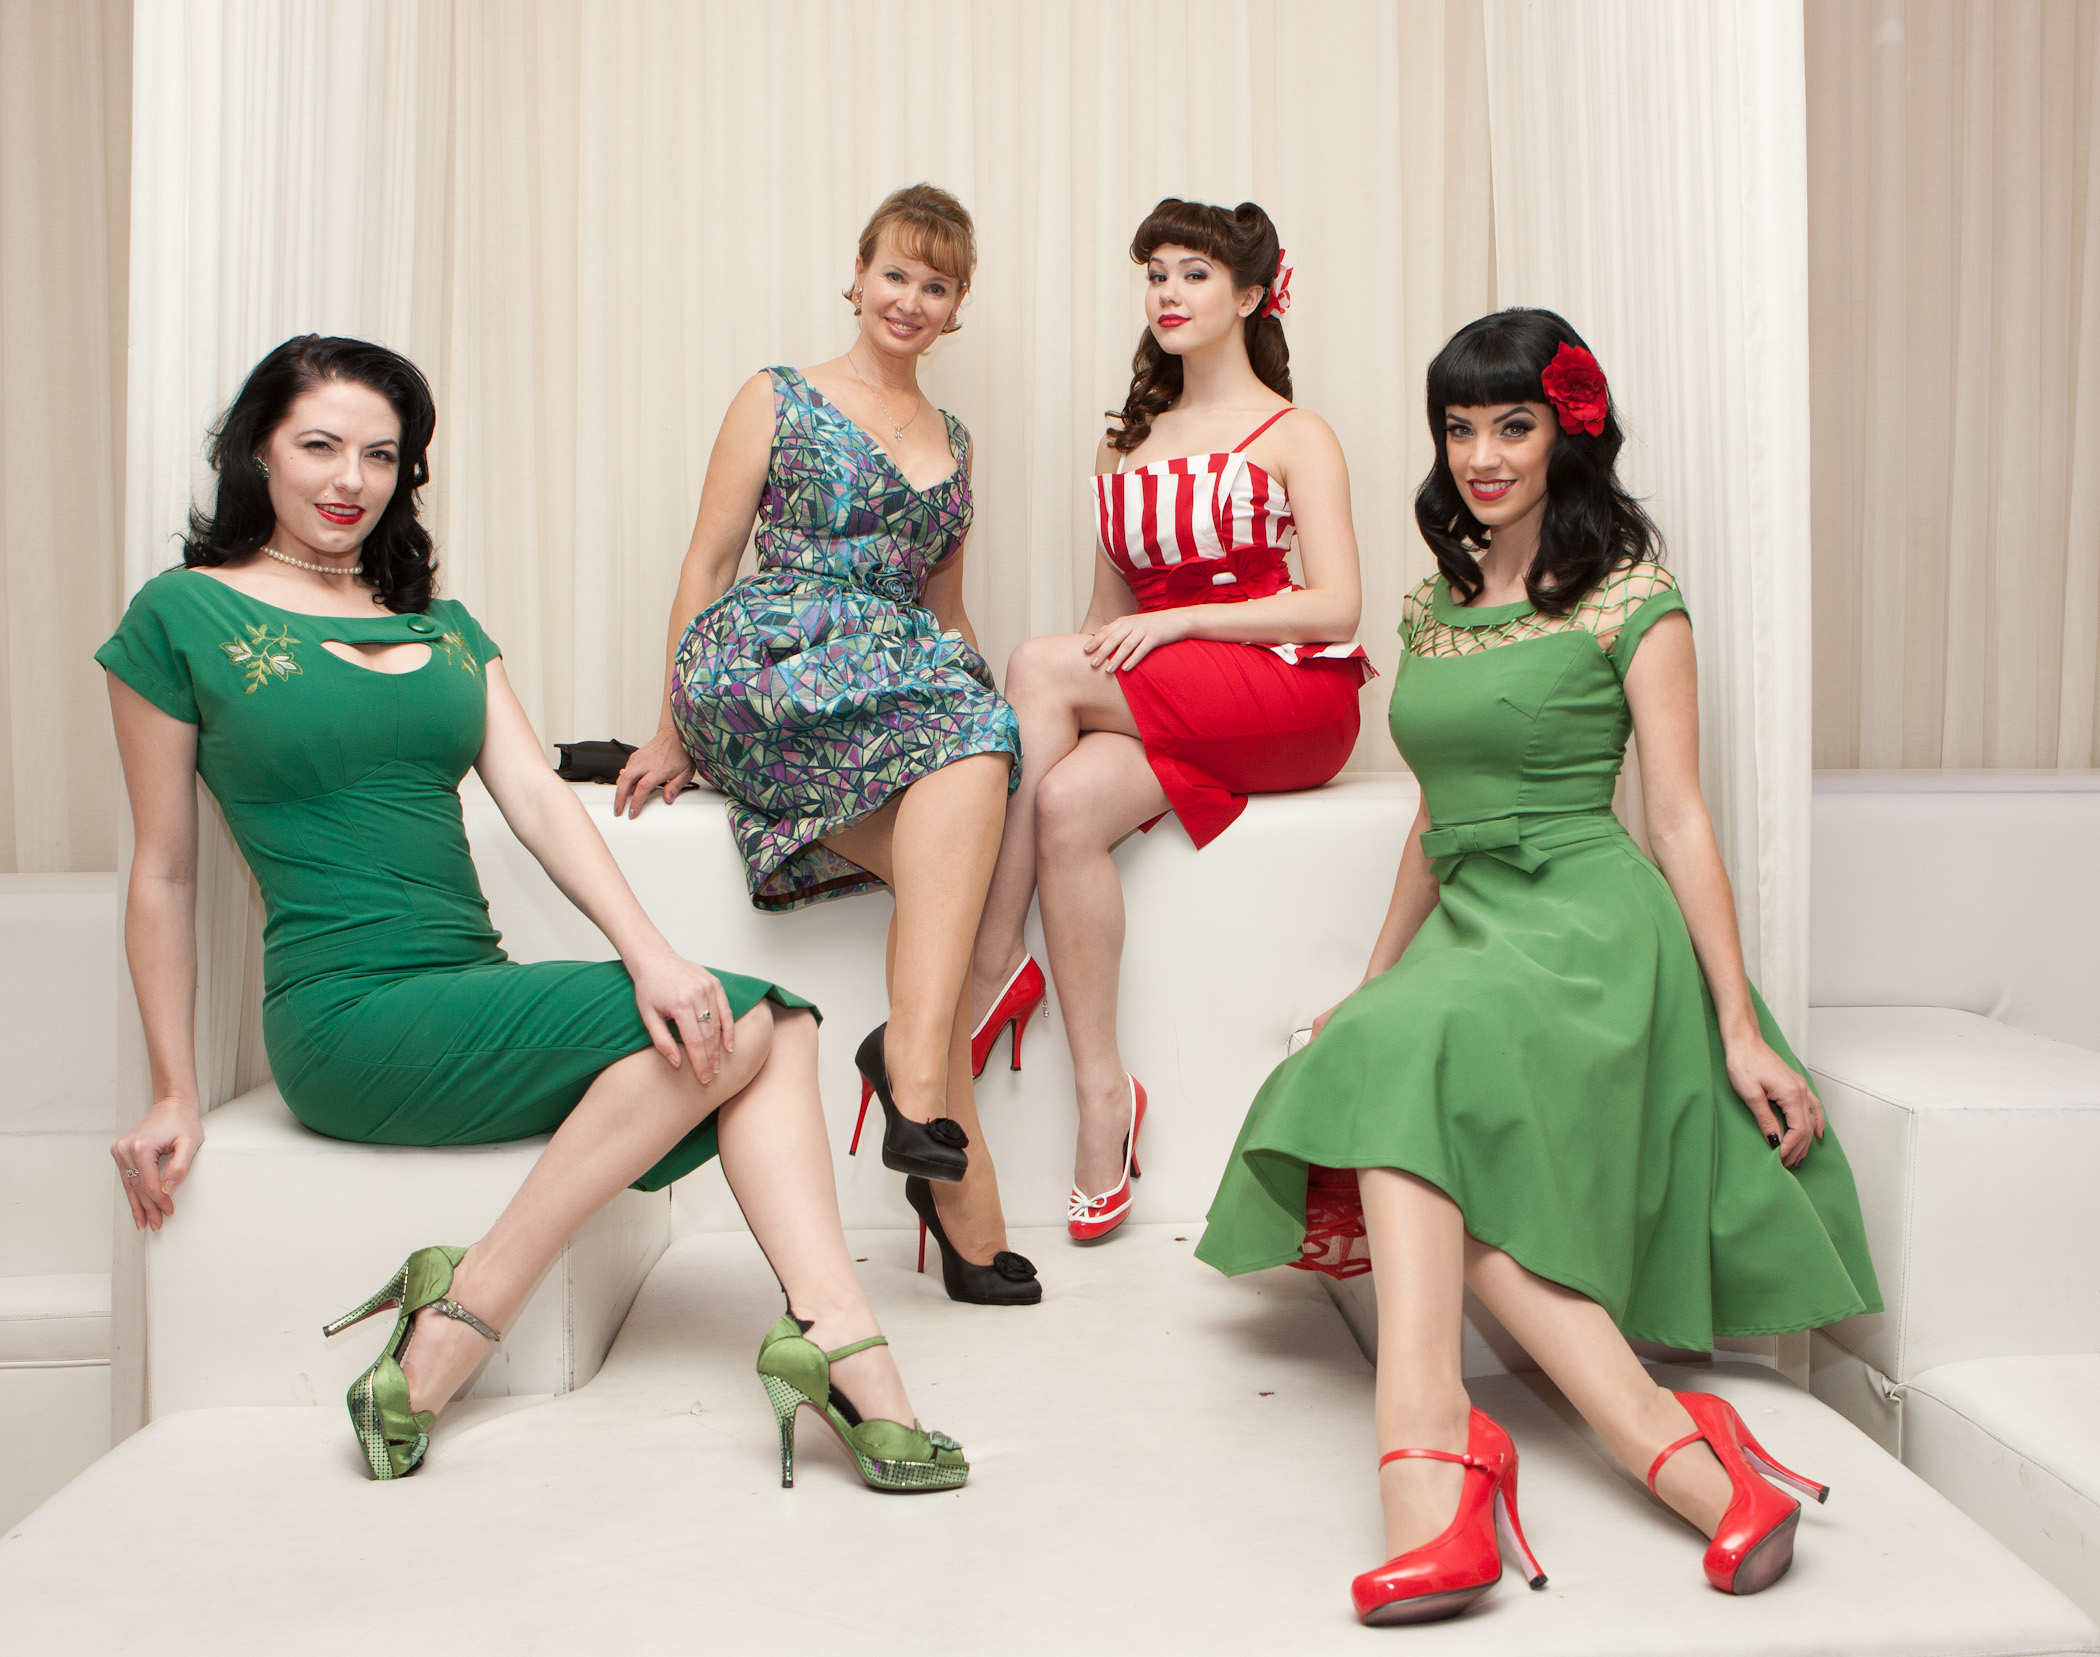 Bettie Page-Inspired Fashion Designer Goes Public